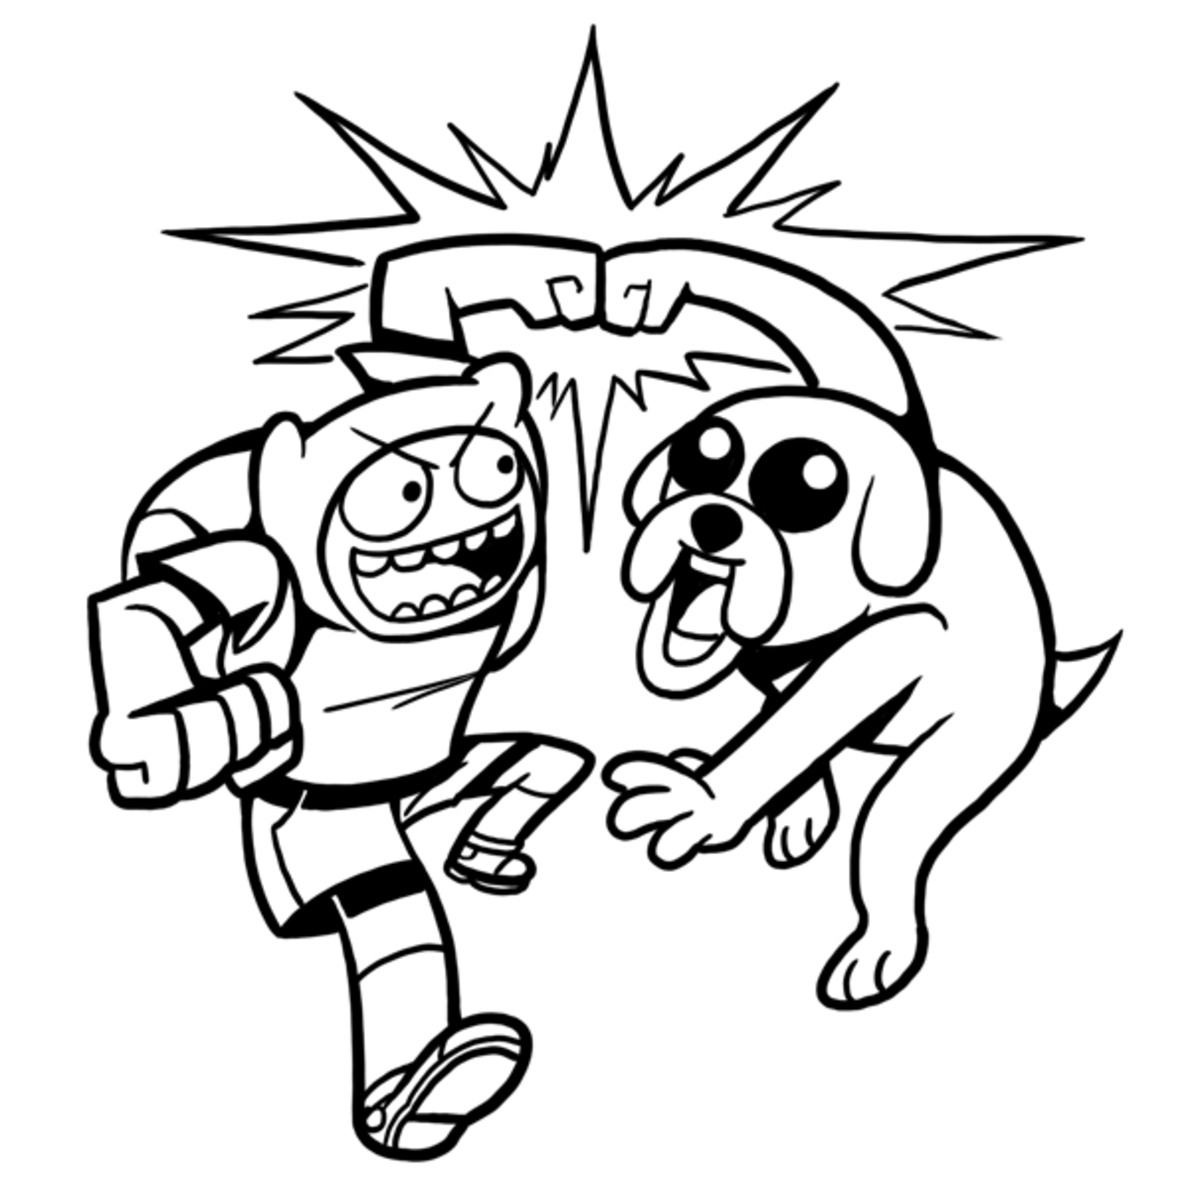 finn and jake doing a power fist - Adventure Time Coloring Pages Jake